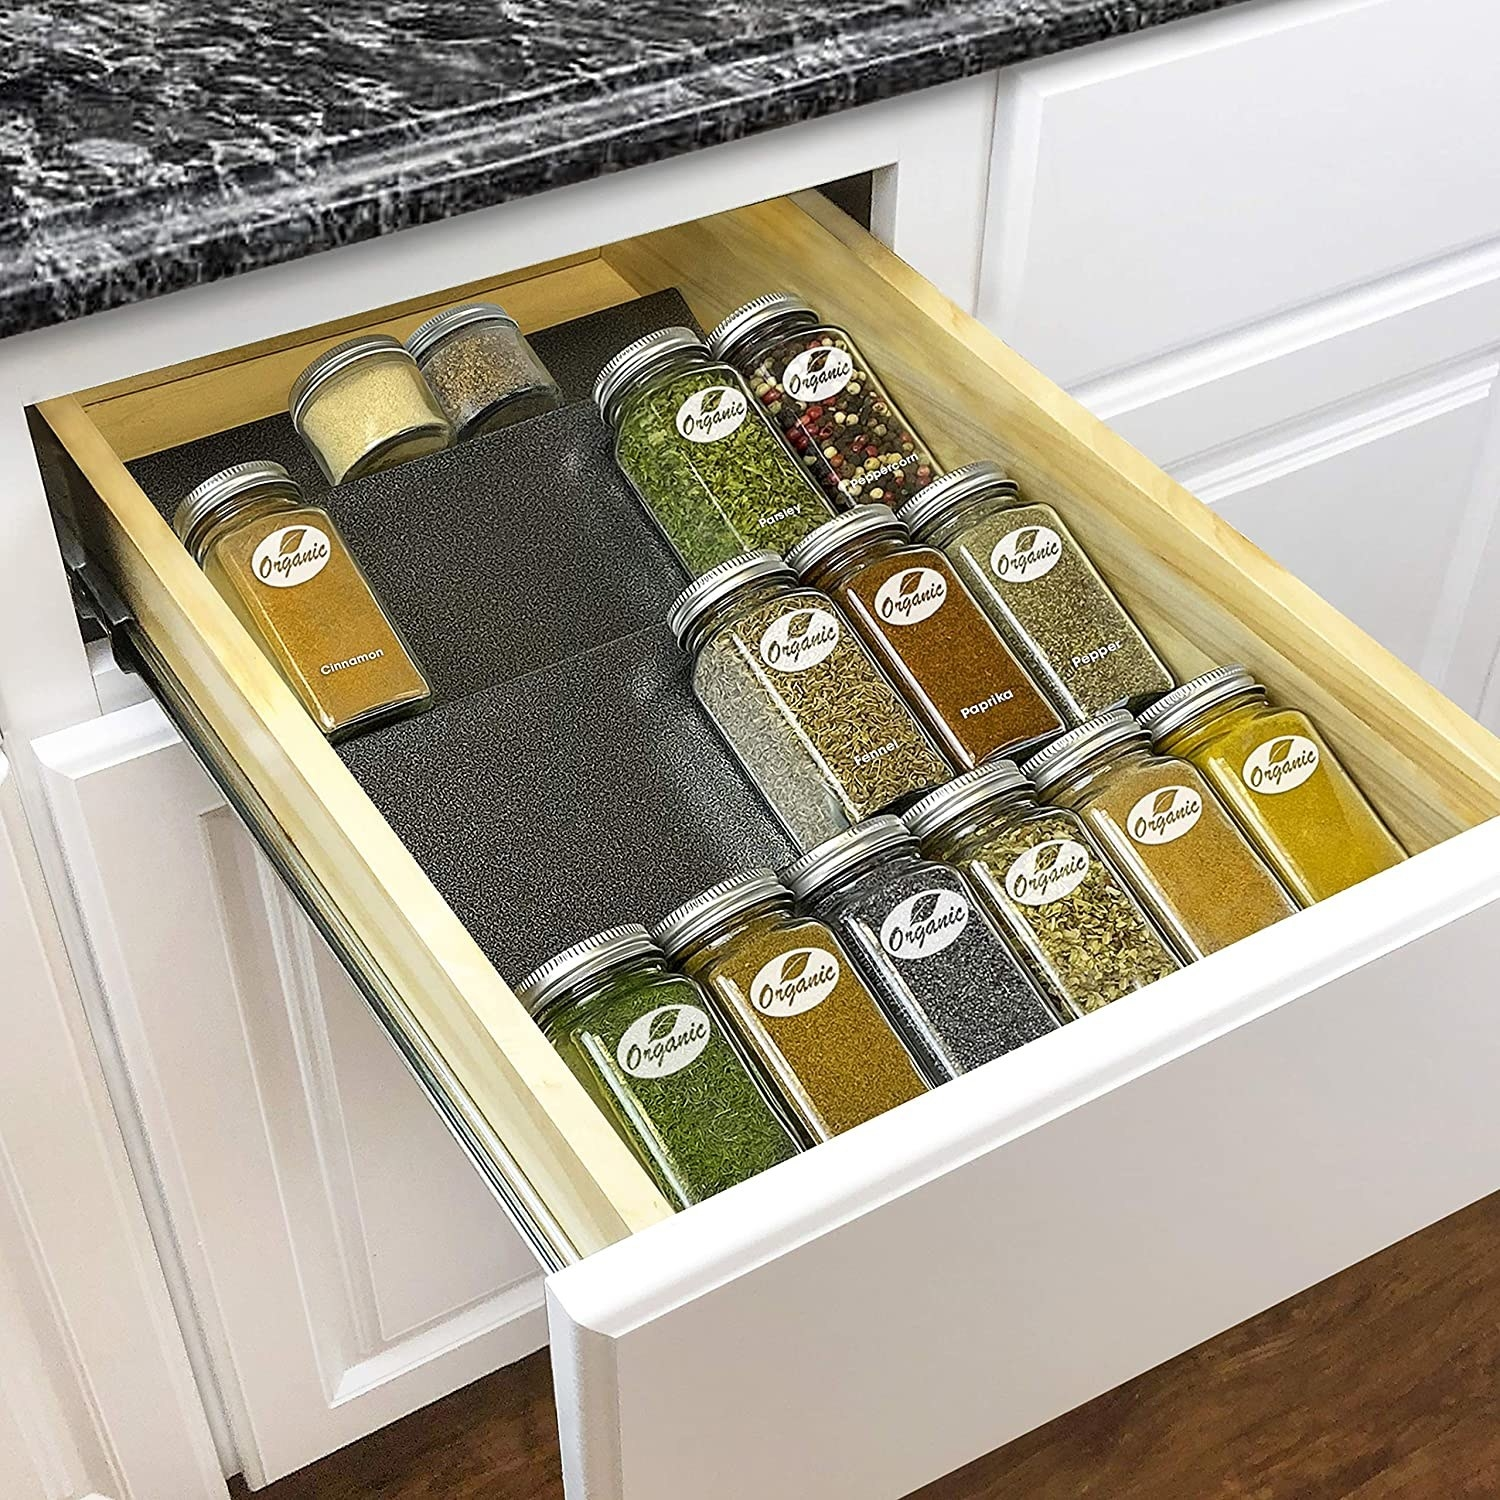 The spice rack tray in a drawer with an assortment of spices on it